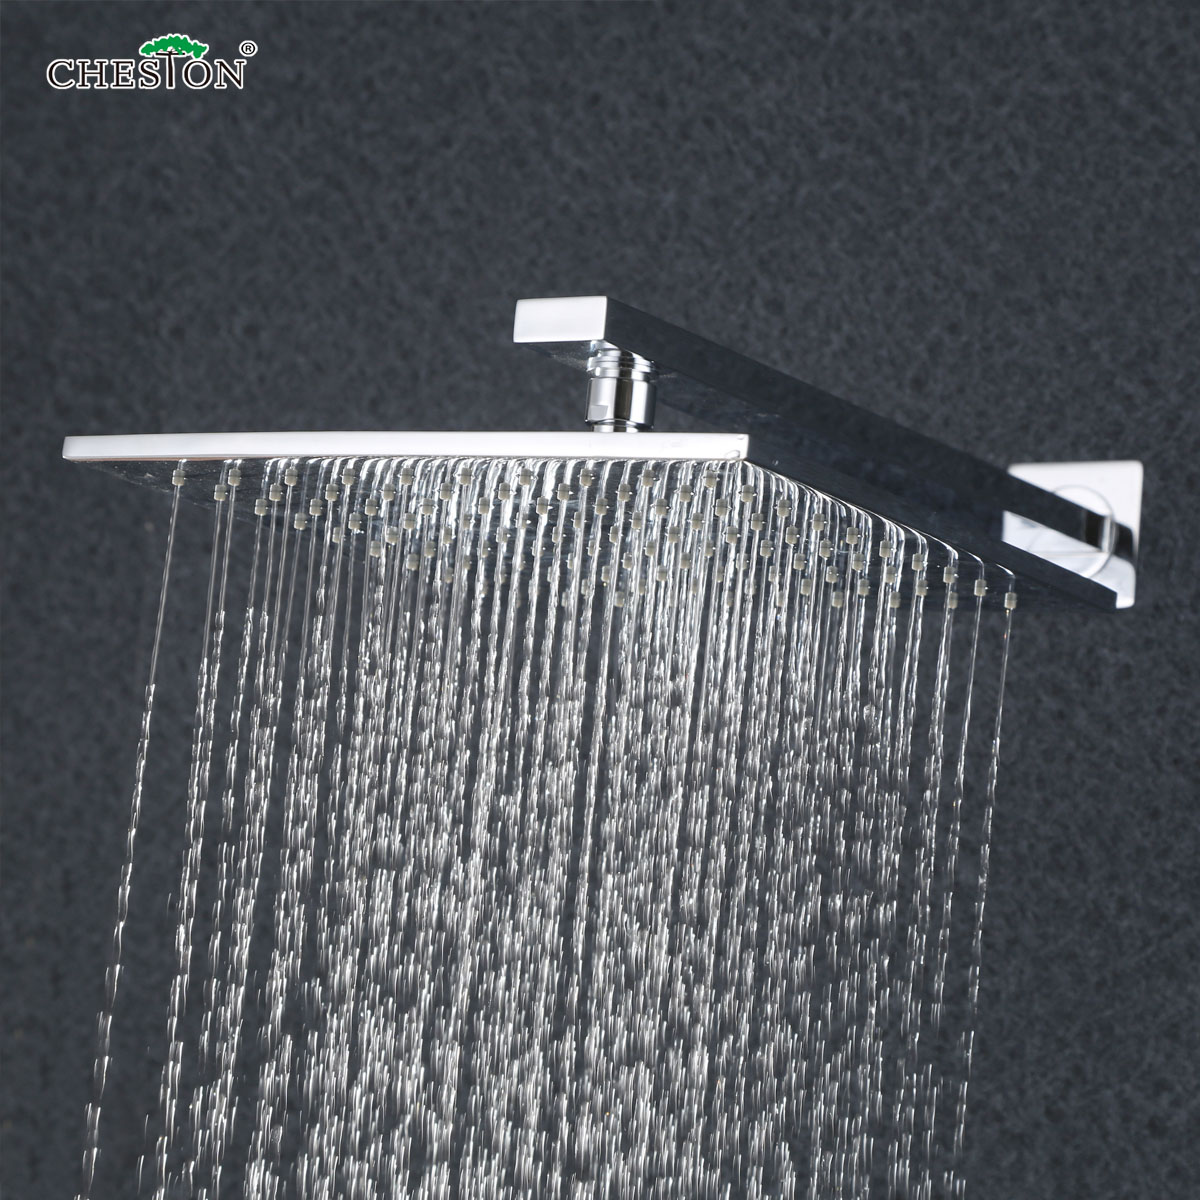 Buy 6 Inch 12 Inch Full Copper Square Single Head Stainless Steel Top Spray Shower  Head Rain Shower Bathroom Shower Accessories In Cheap Price On M.alibaba.  ...